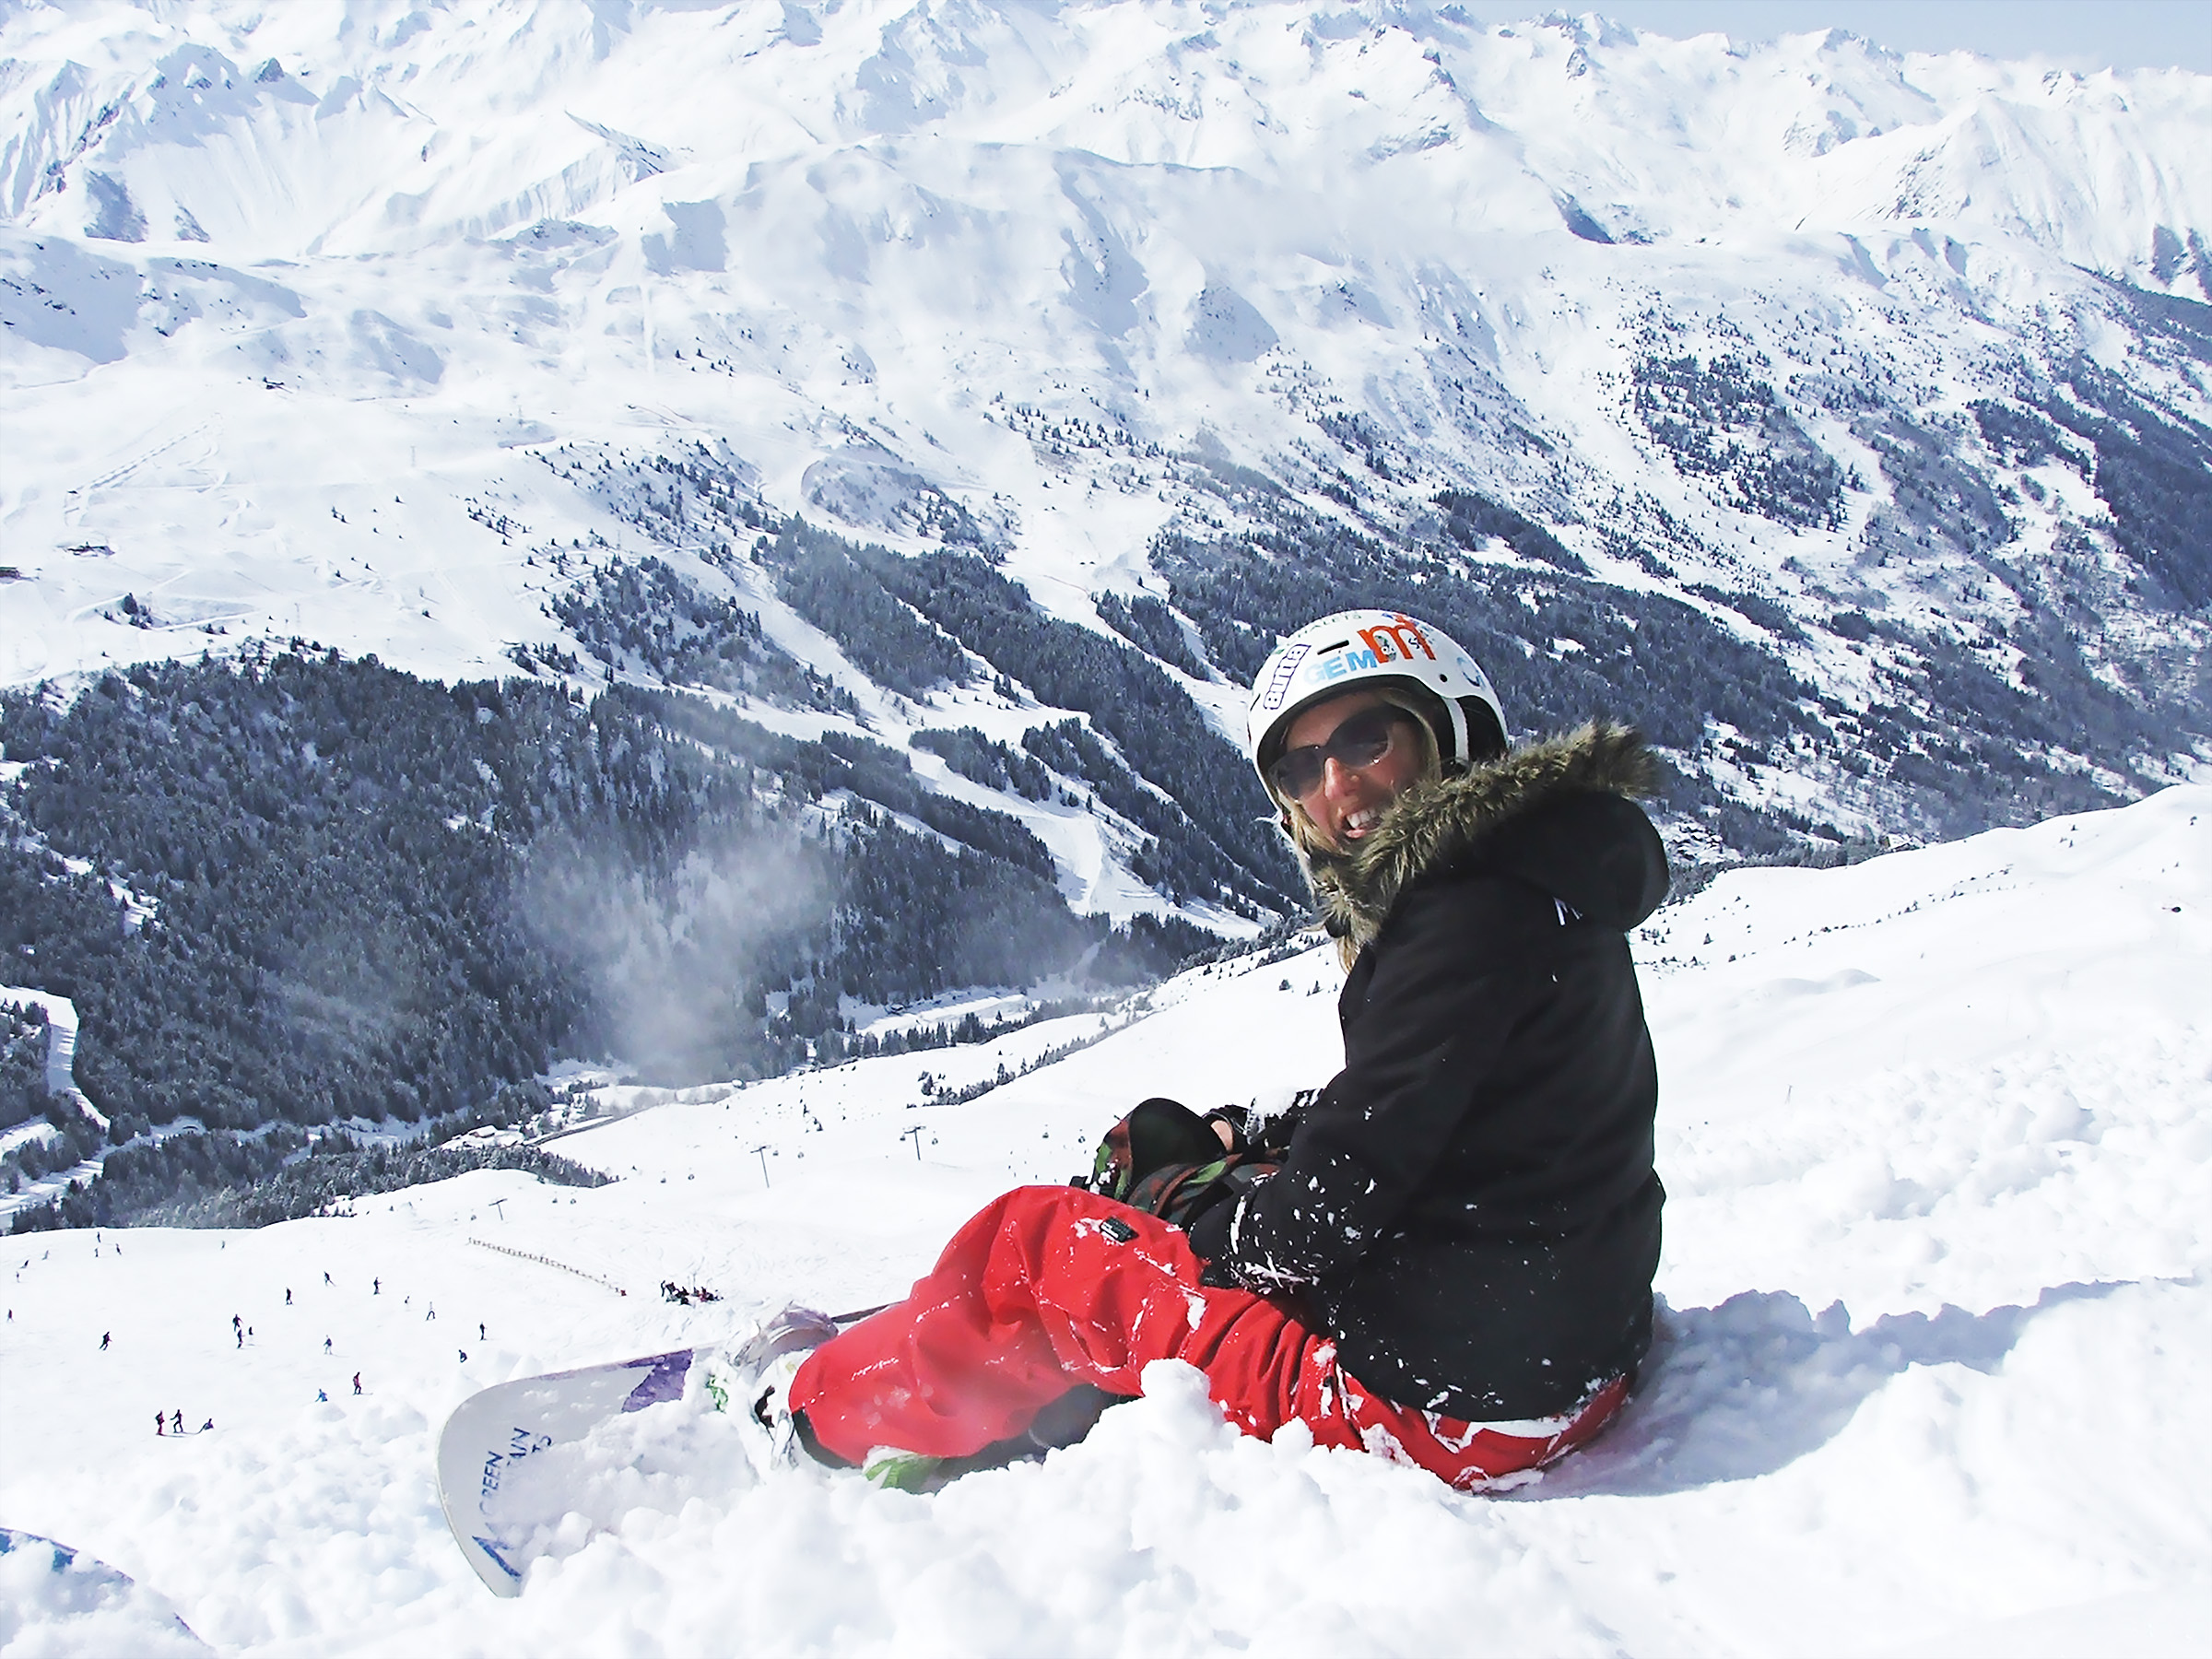 Gemma Hunt snowboarding French Alps